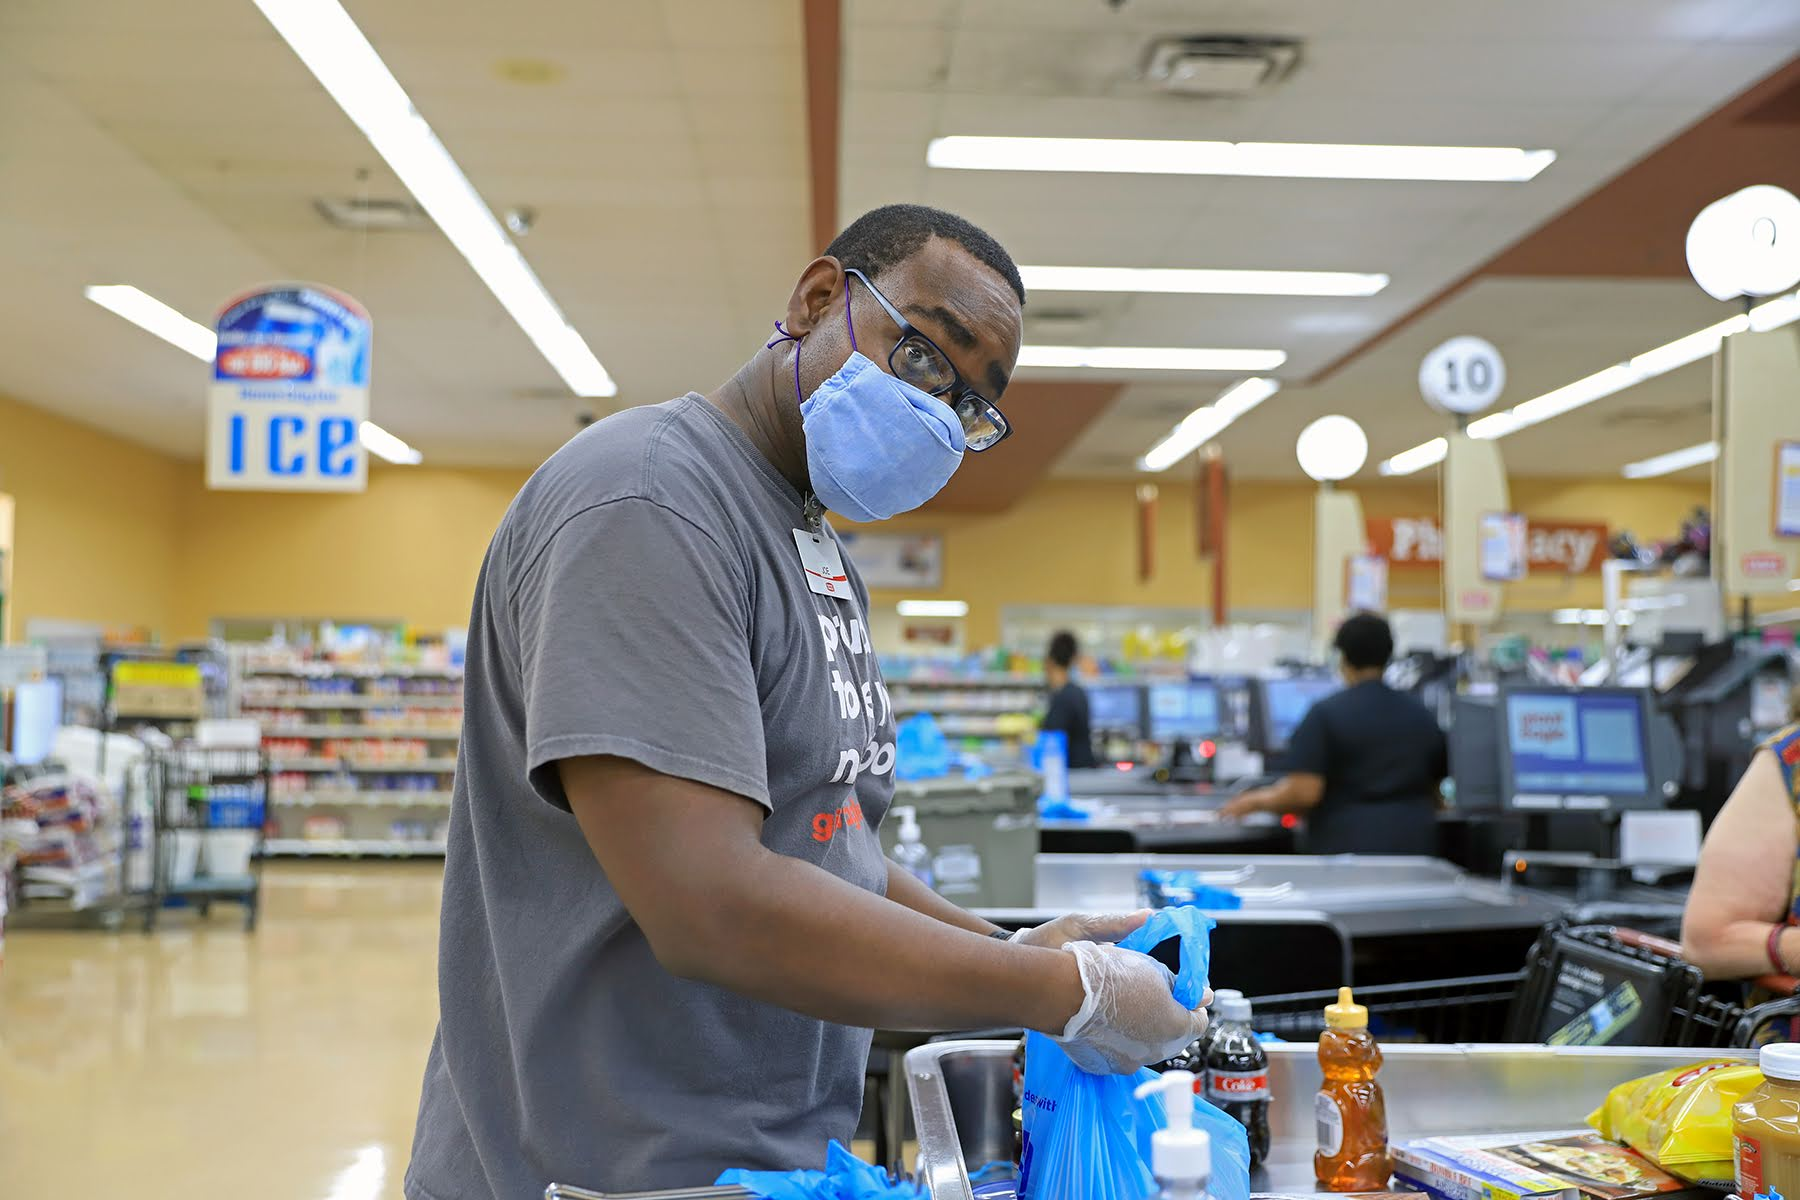 Joseph Vernon Smith, a Black man, bagging groceries at Giant Eagle. He's wearing a face mask and his head is turned to look straight at the camera.